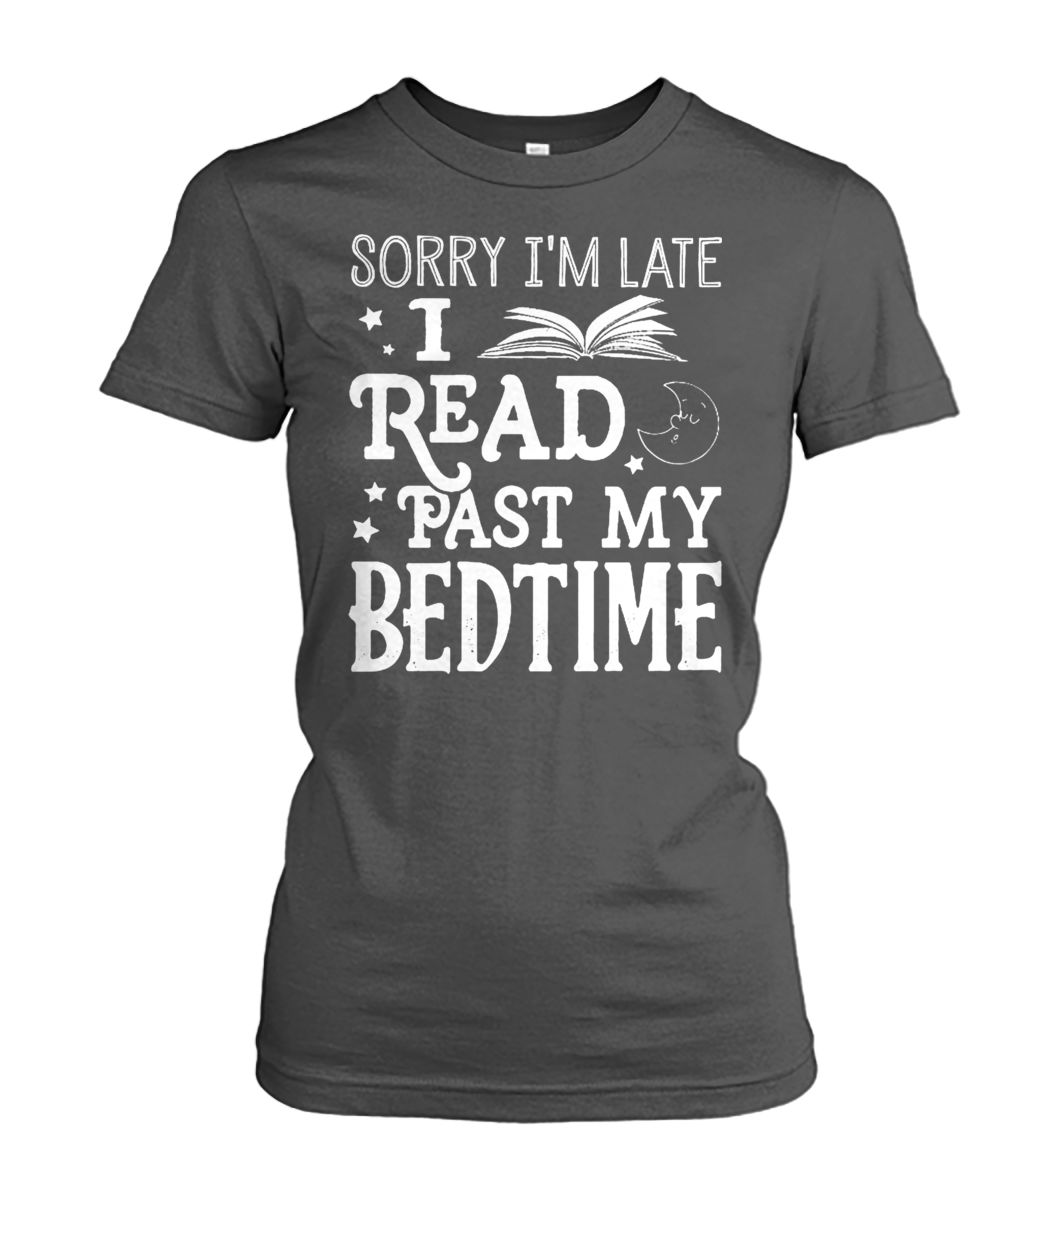 Sorry I'm late I read past my bedtime women's crew tee